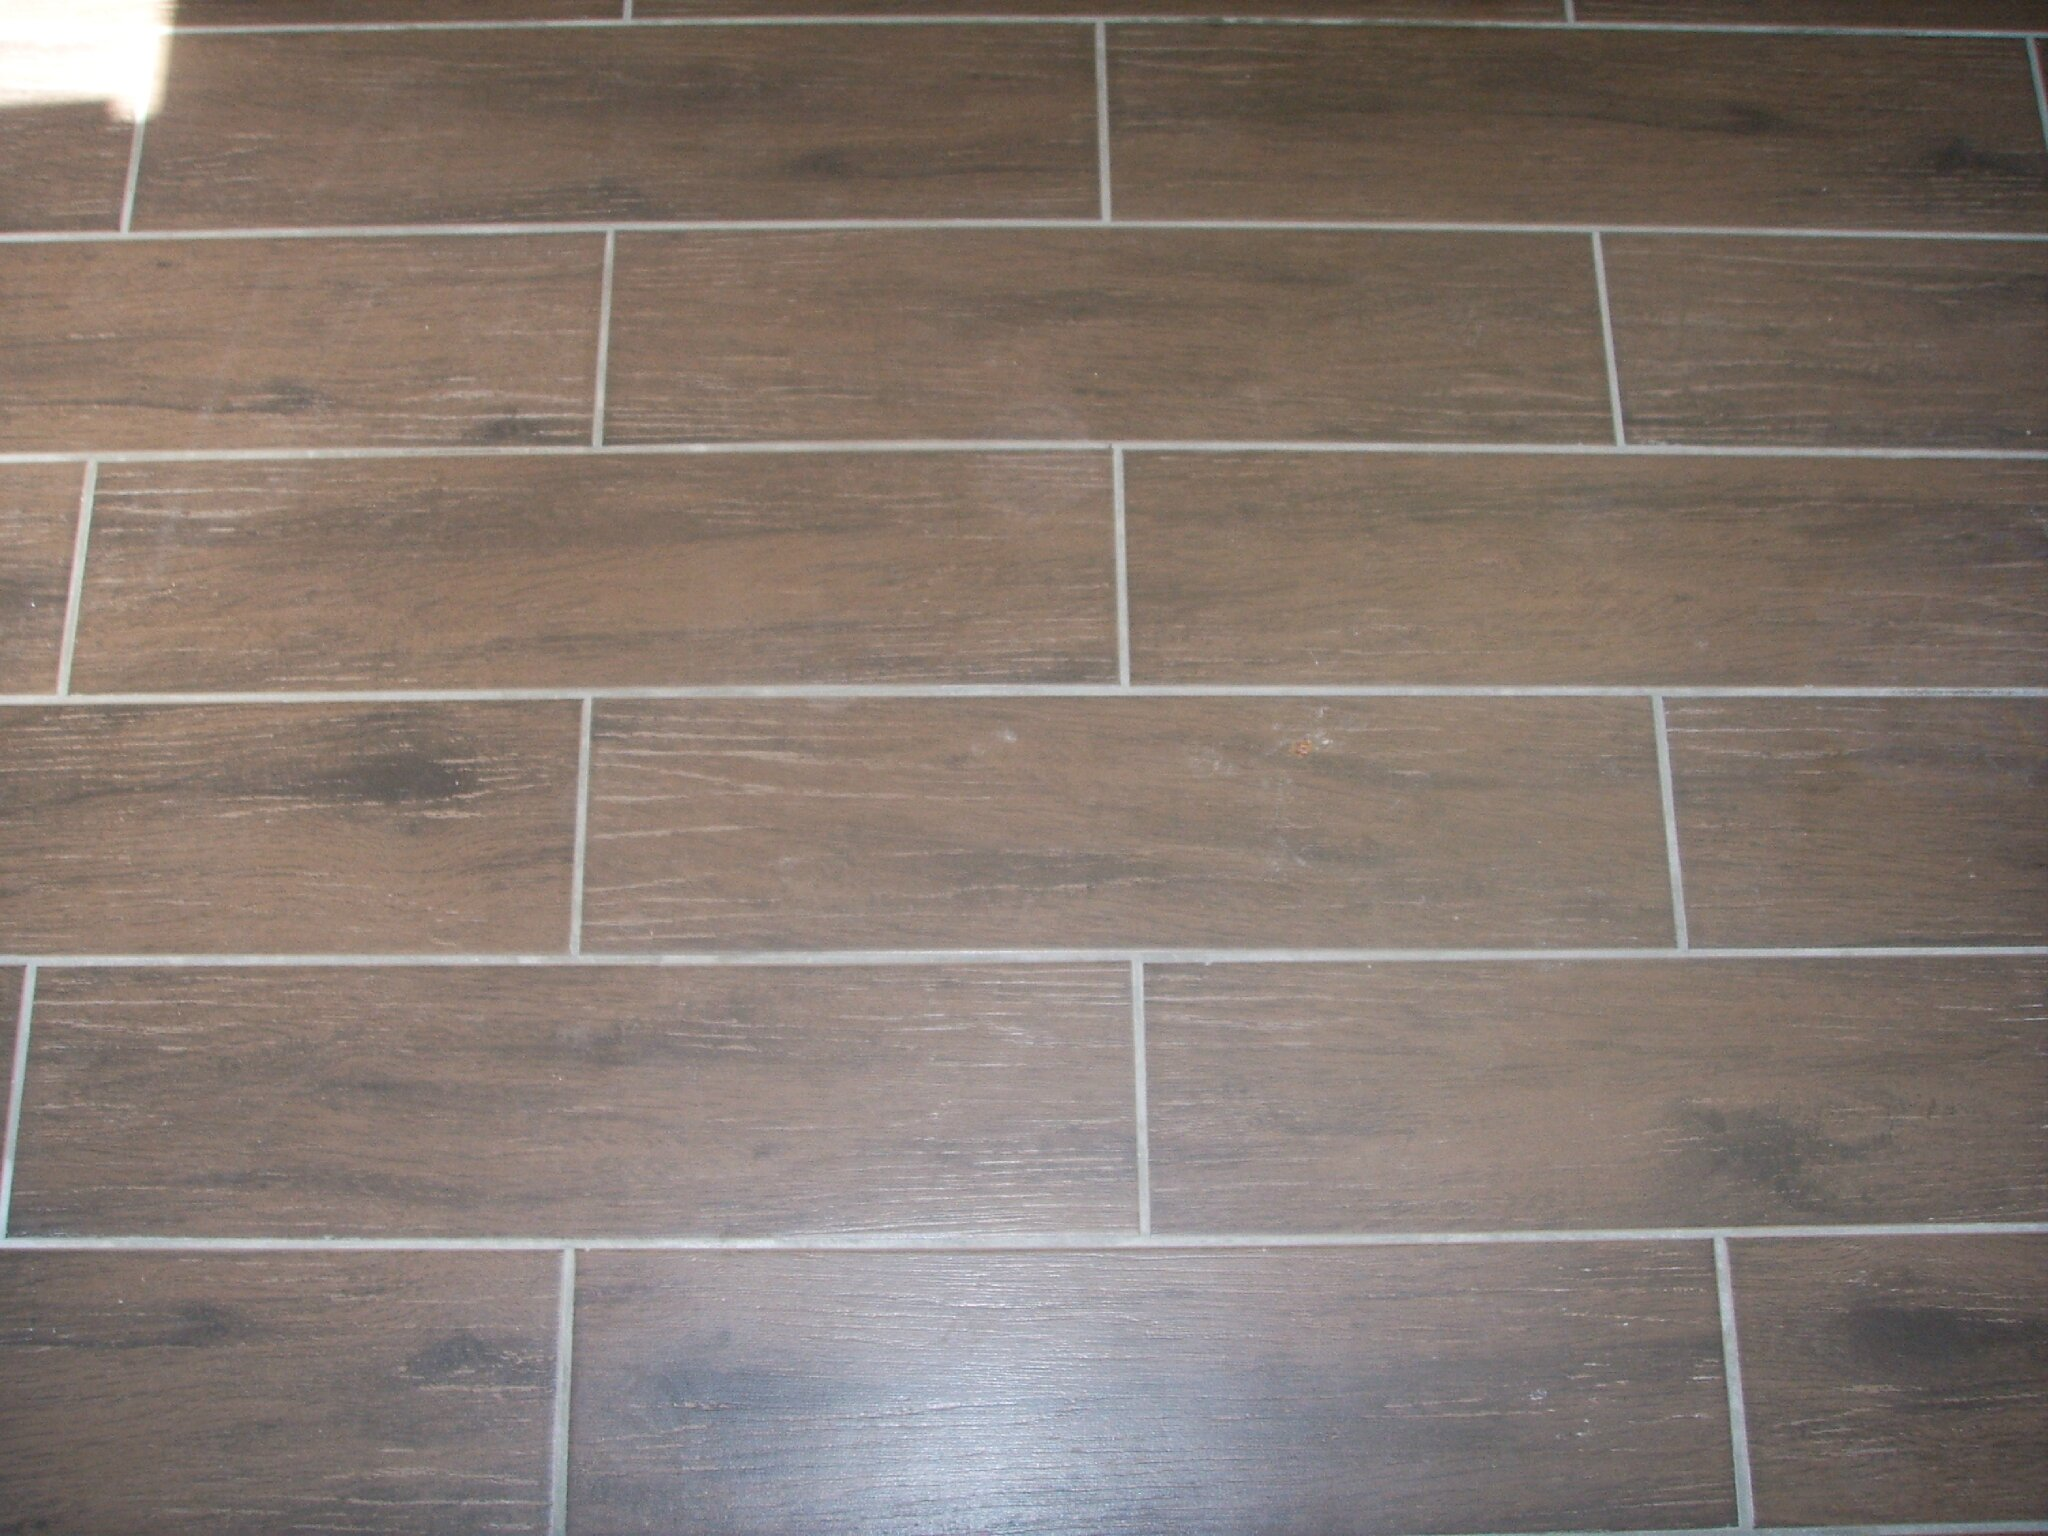 Parquet ou carrelage appartement devis pour travaux maison for Devis pose carrelage